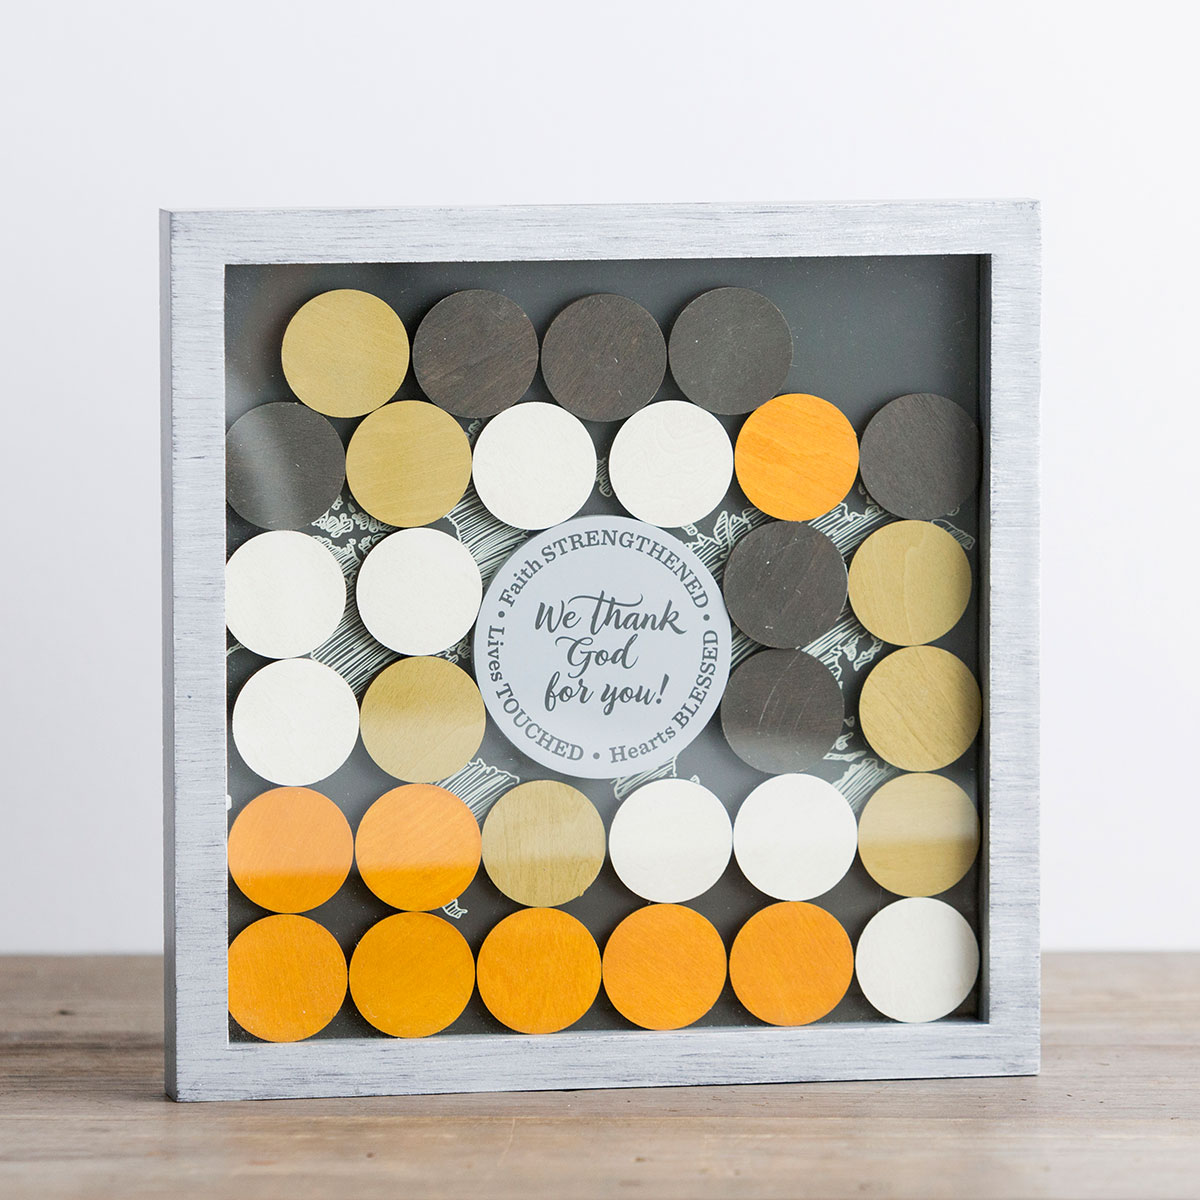 We Thank God for You - Wood & Glass Shadow Box Plaque with Wooden Coins